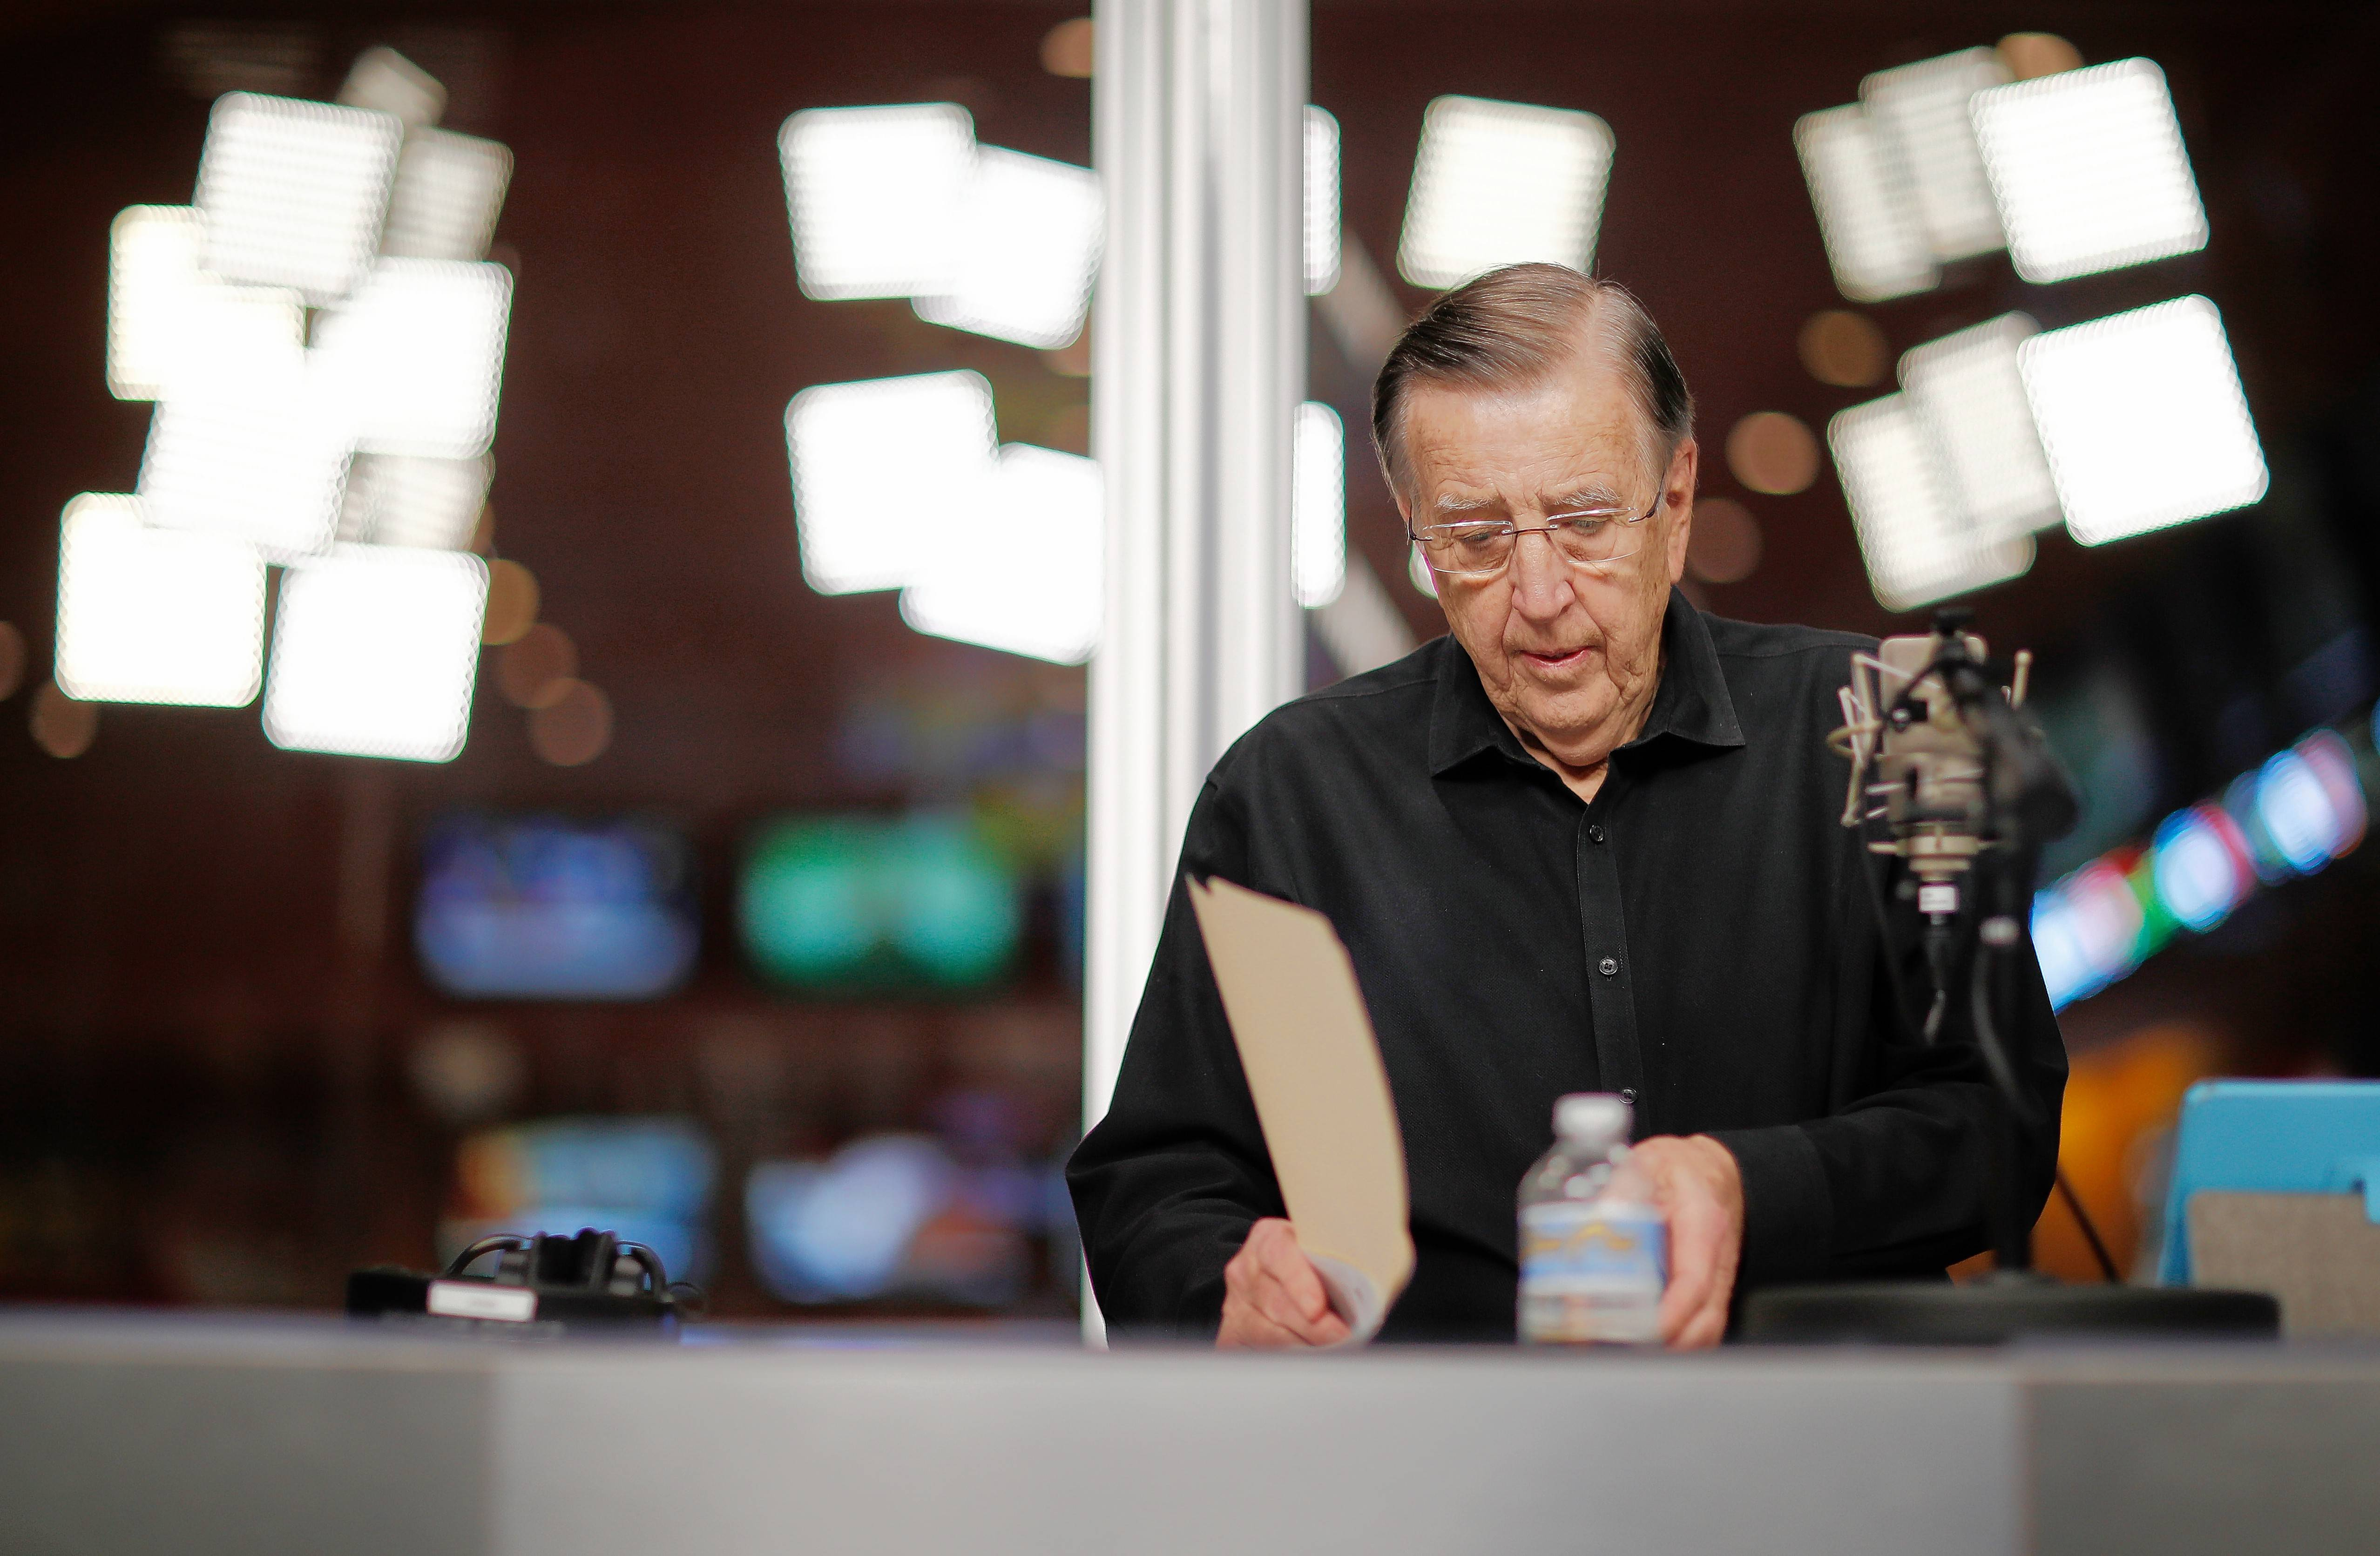 You're looking live at Brent Musburger in a sports book